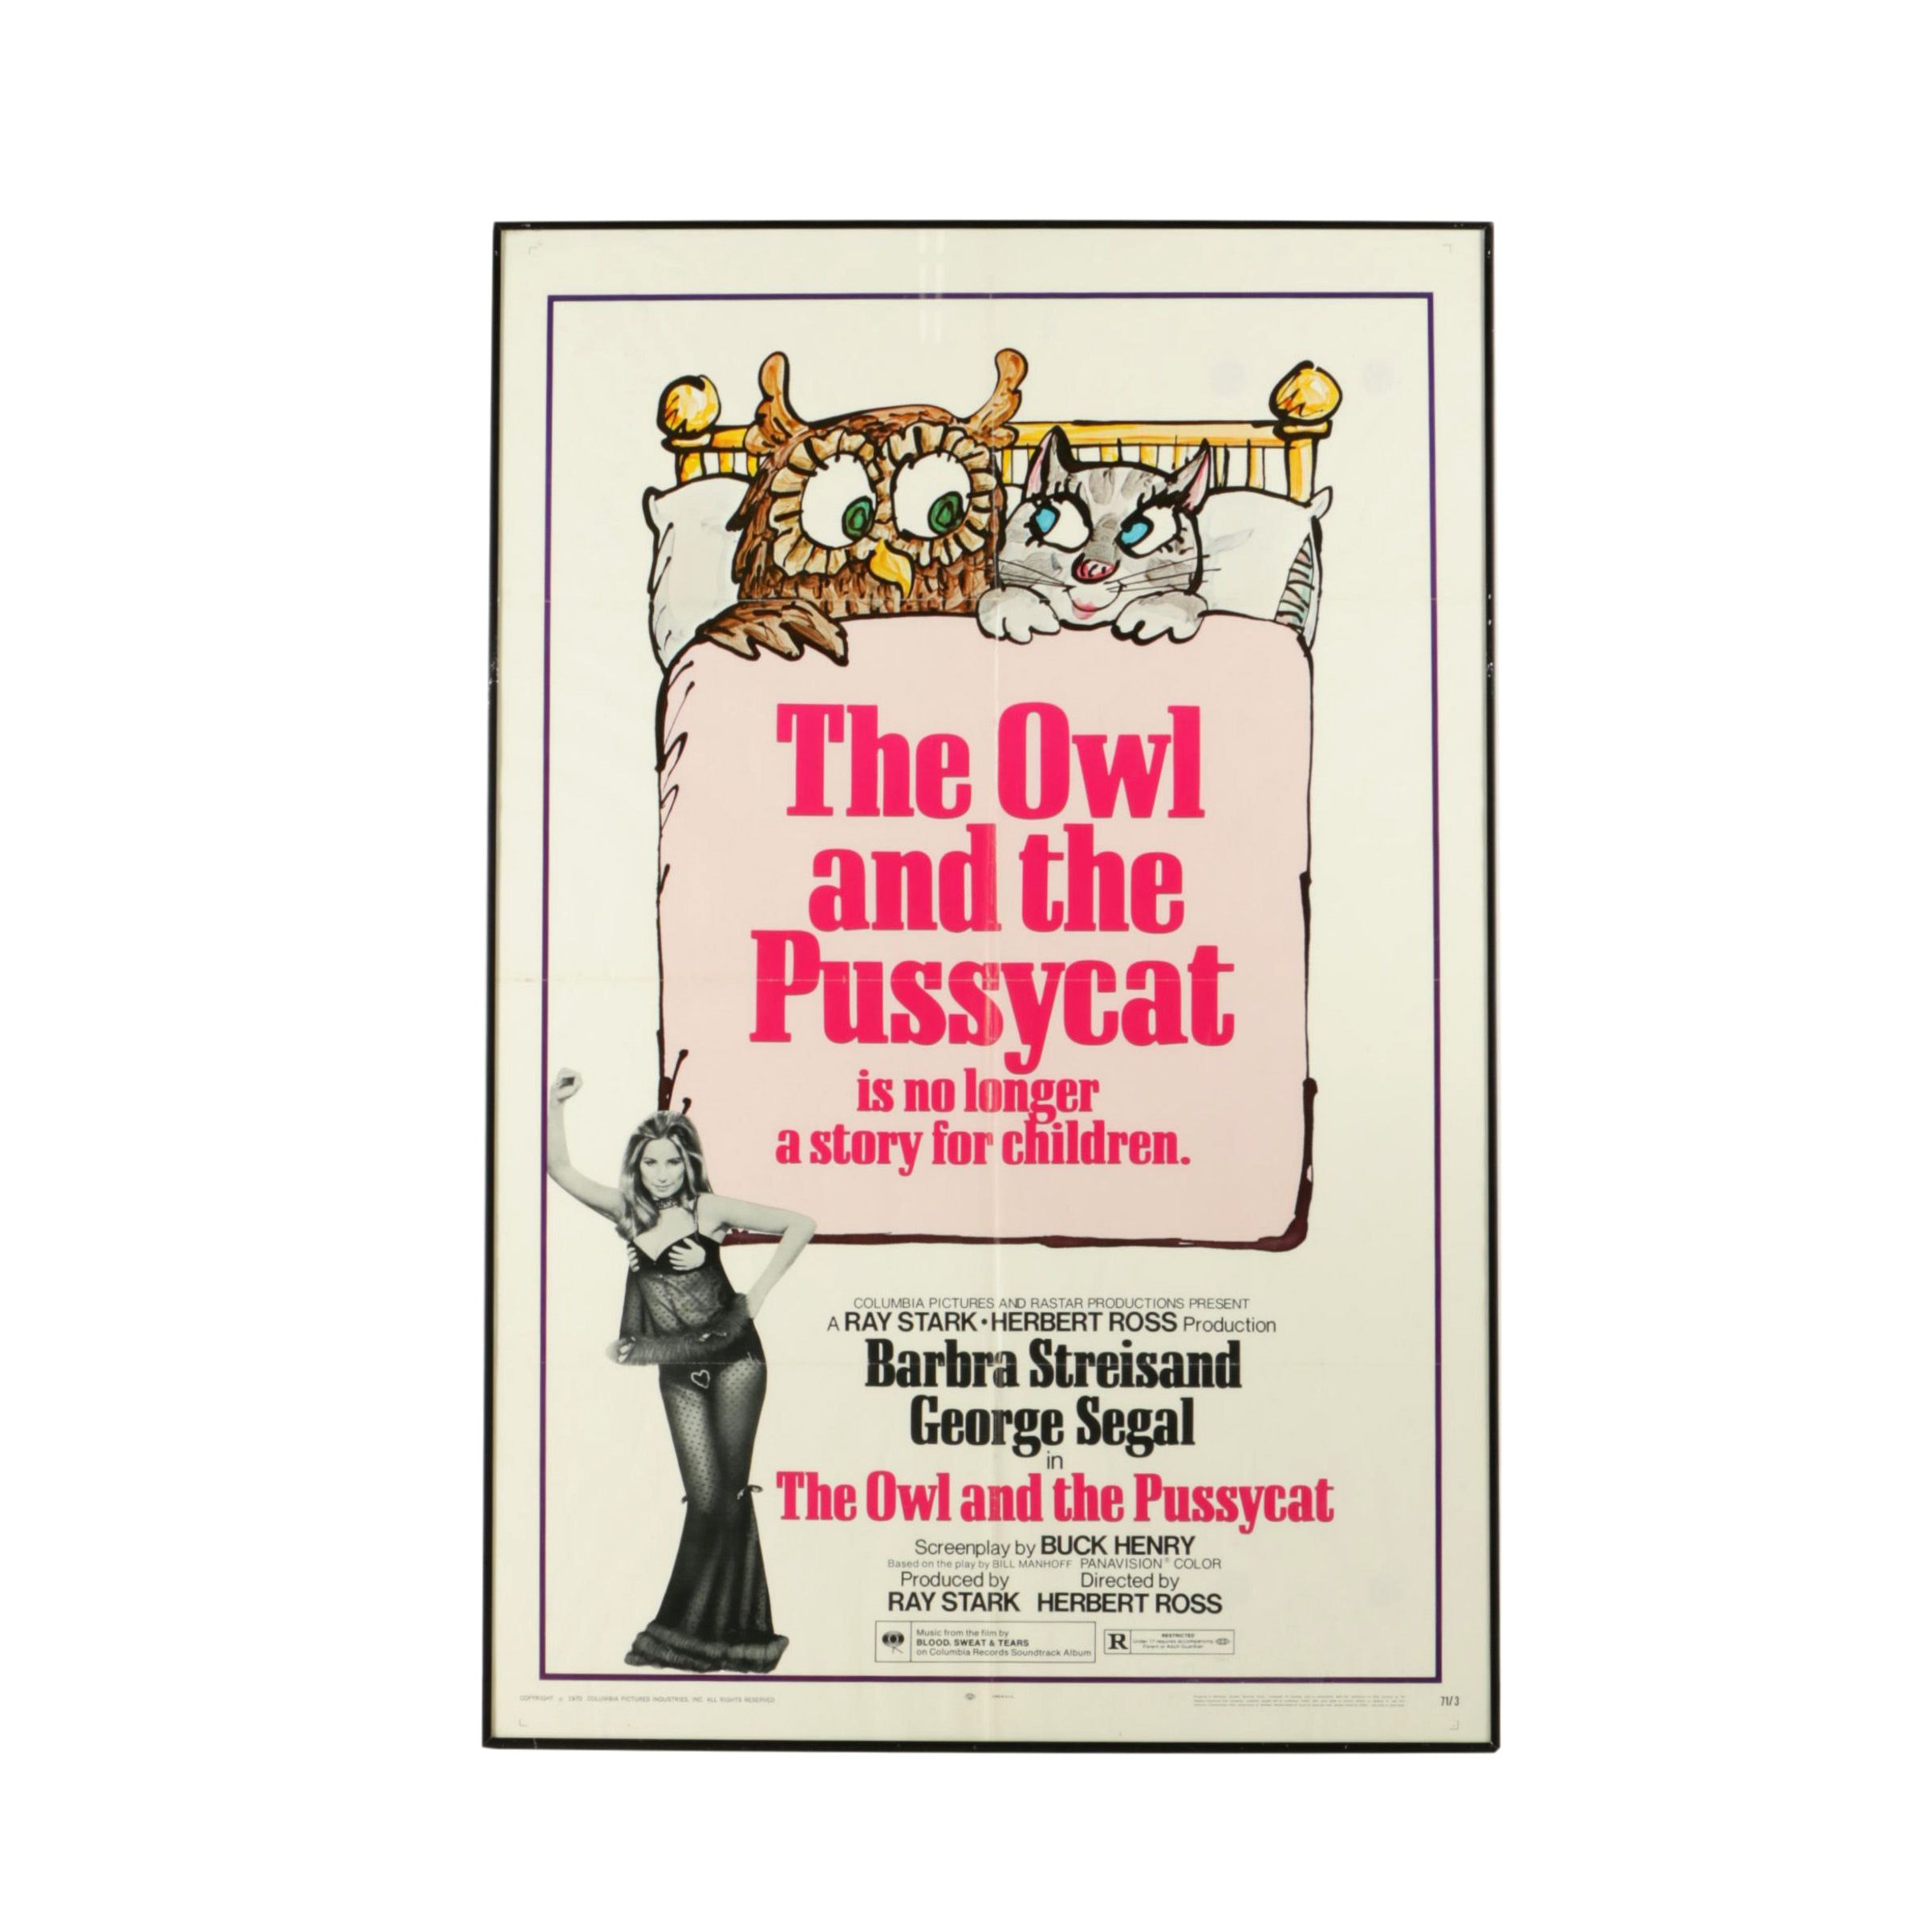 """1970 Movie Poster for """"The Owl and the Pussycat"""" Starring Barbra Streisand"""